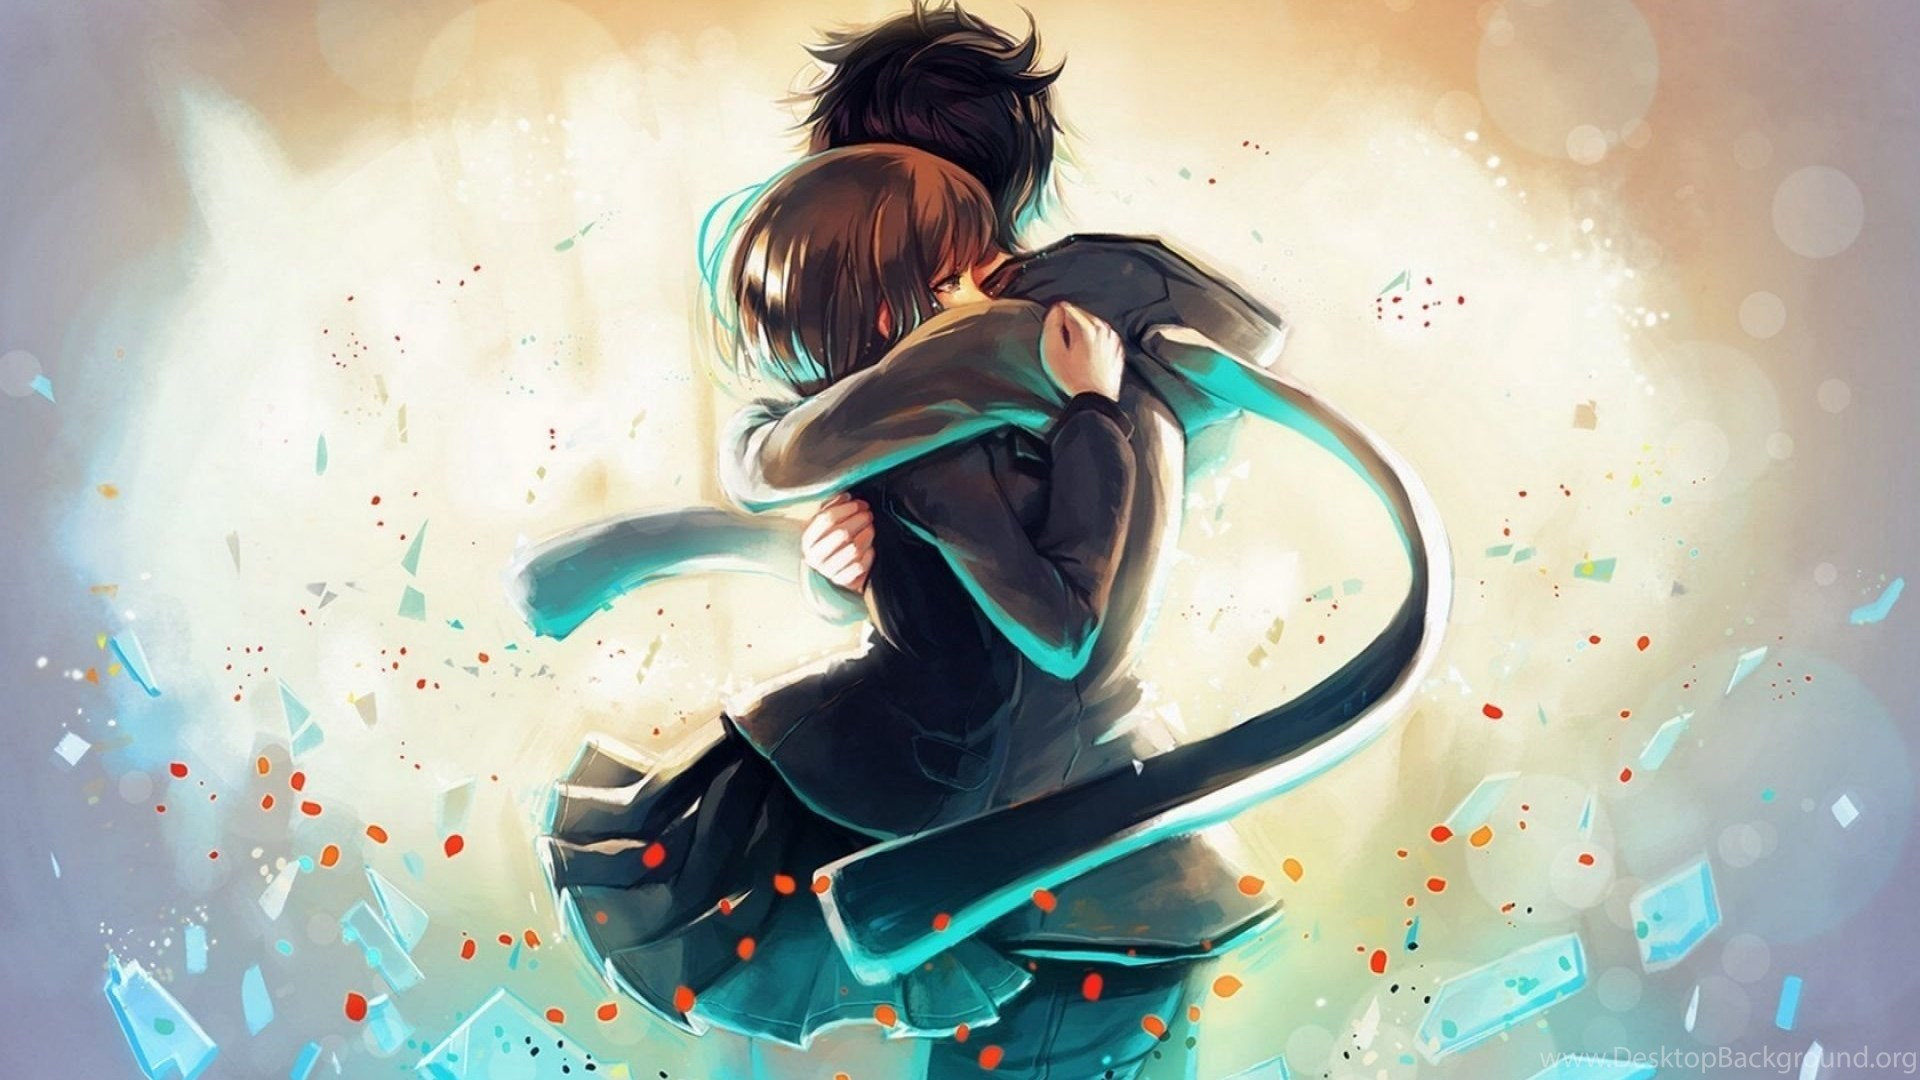 Cute Anime Wallpapers Hd Download Of Anime Couple Desktop Background